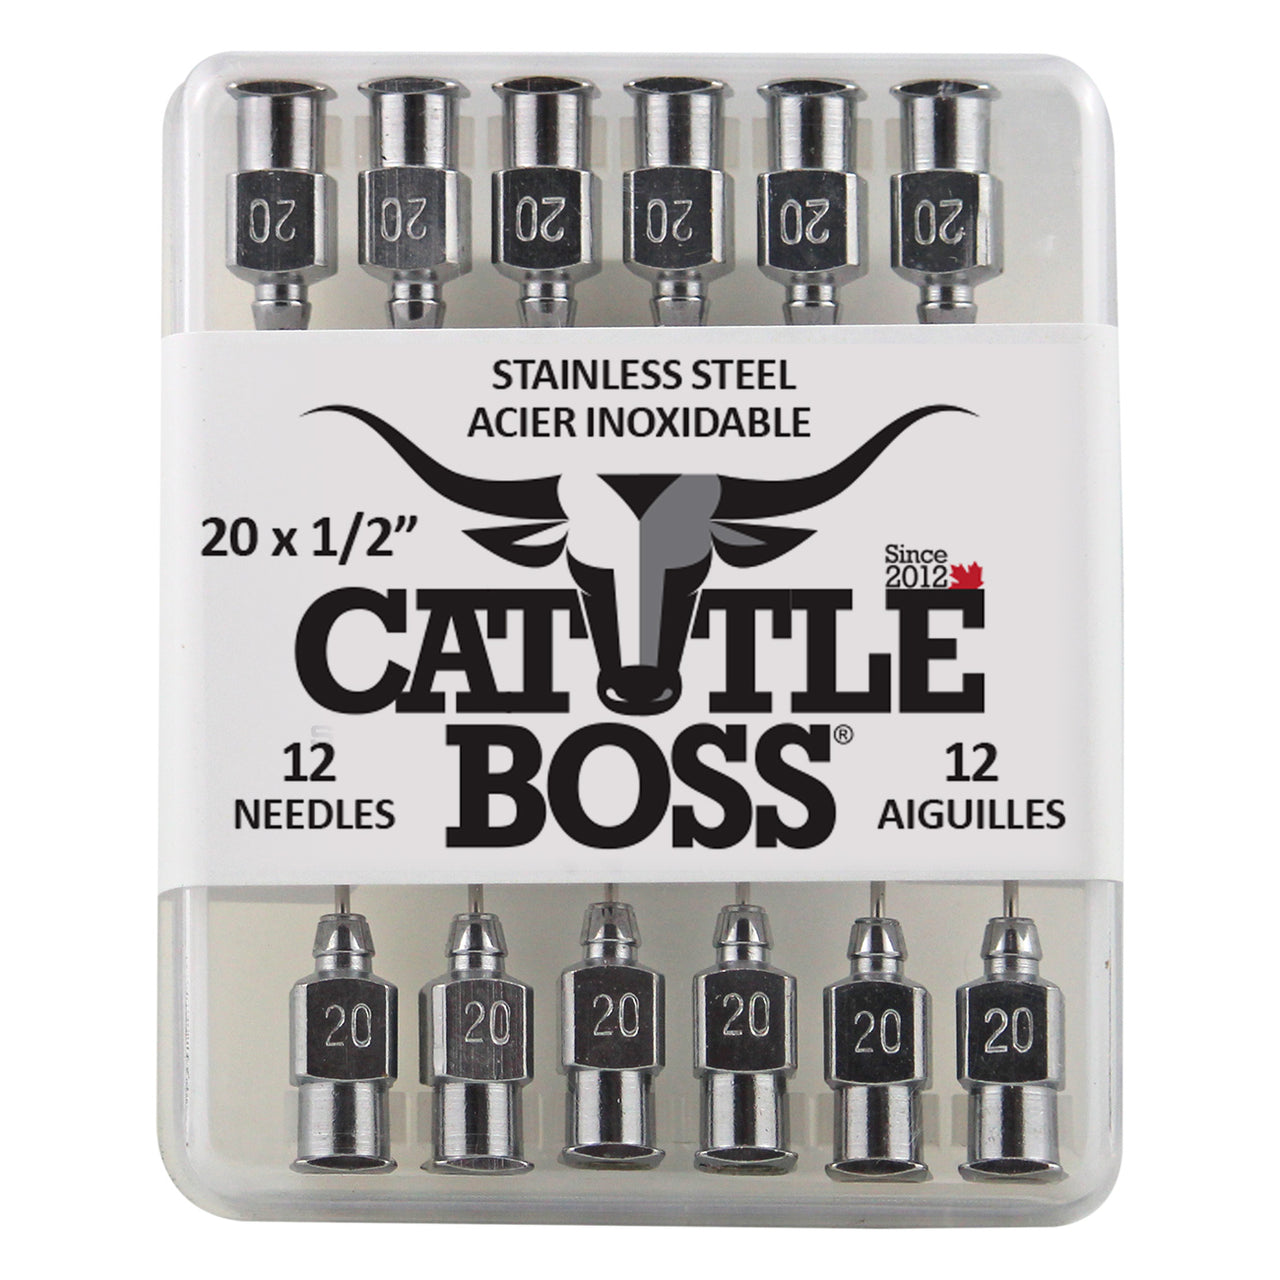 Cattle Boss Stainless Steel Hub Needle (12 Pack) 20X1/2 - Drug Administration Cattle Boss - Canada